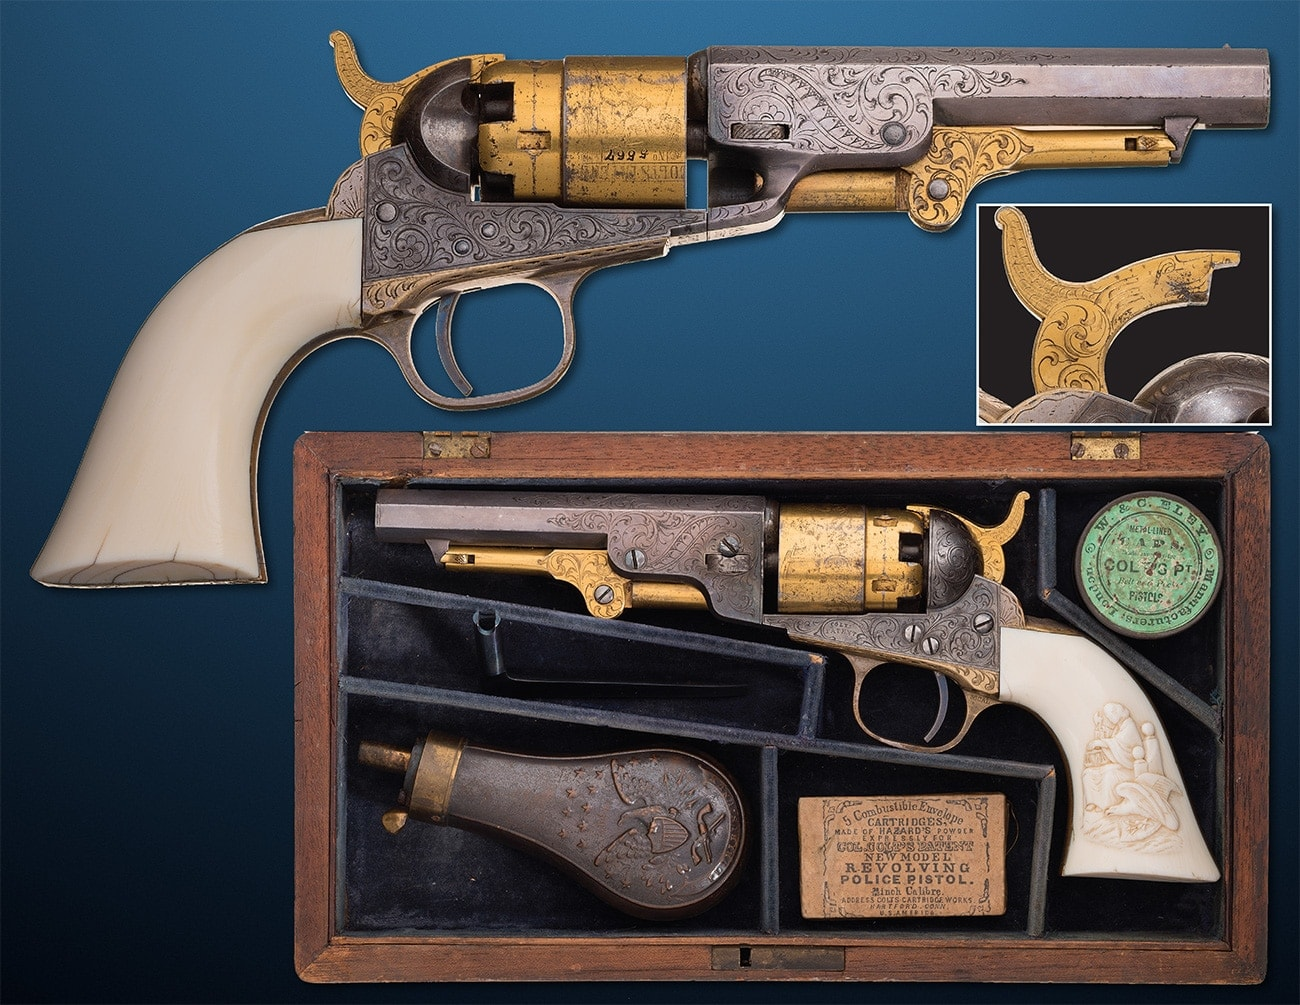 How about a tri-color factory engraved Colt Model 1862 Pocket Navy with a 4.5-inch barrel and ivory grips. $40,000 - $60,000